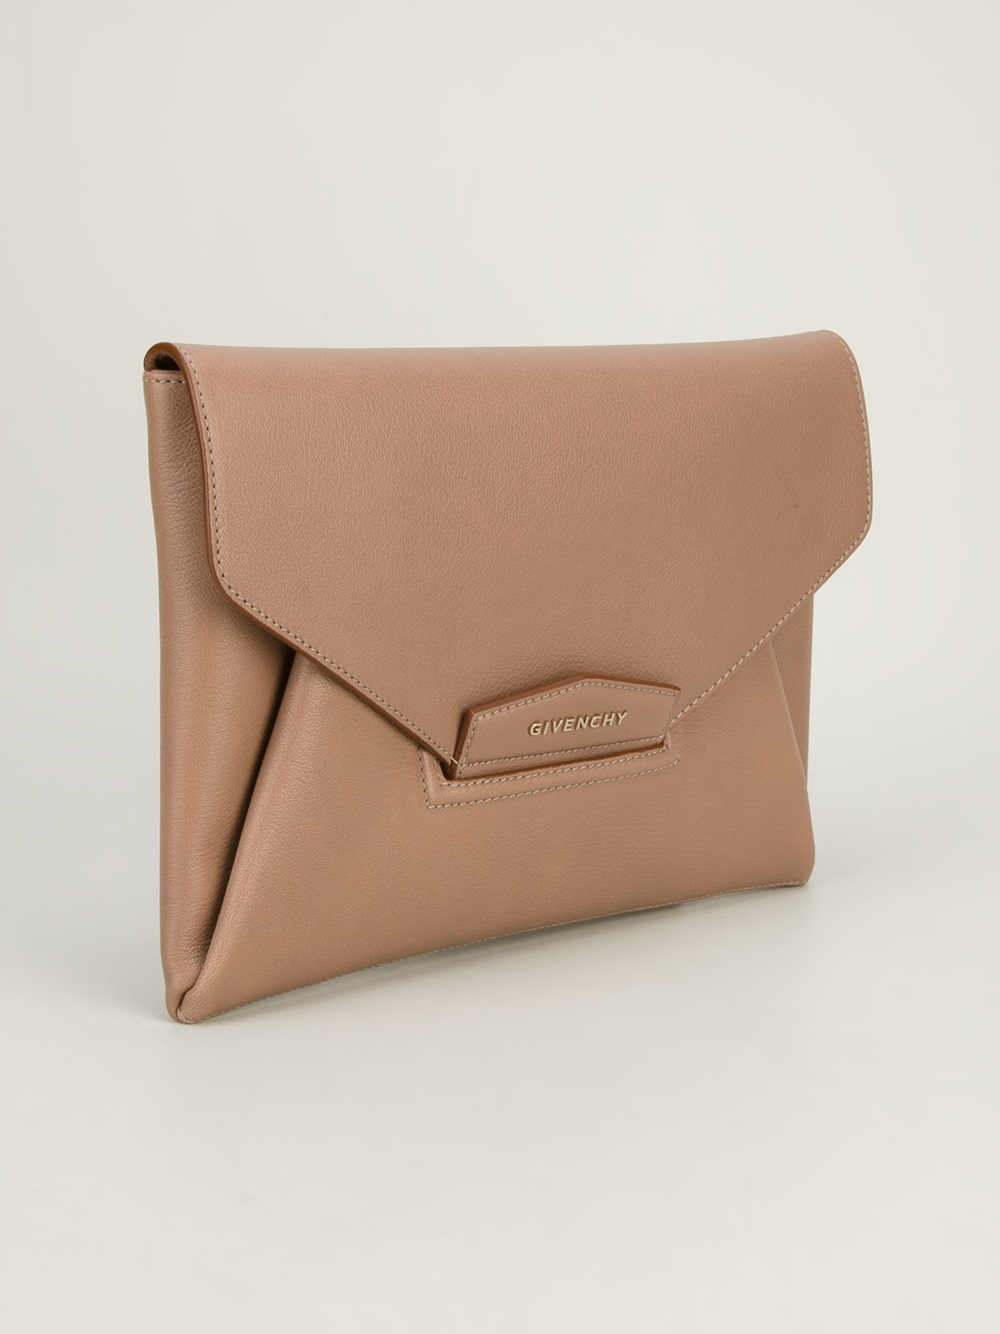 ebd2c2fa95 Givenchy Antigona Envelope Clutch in Natural - Lyst